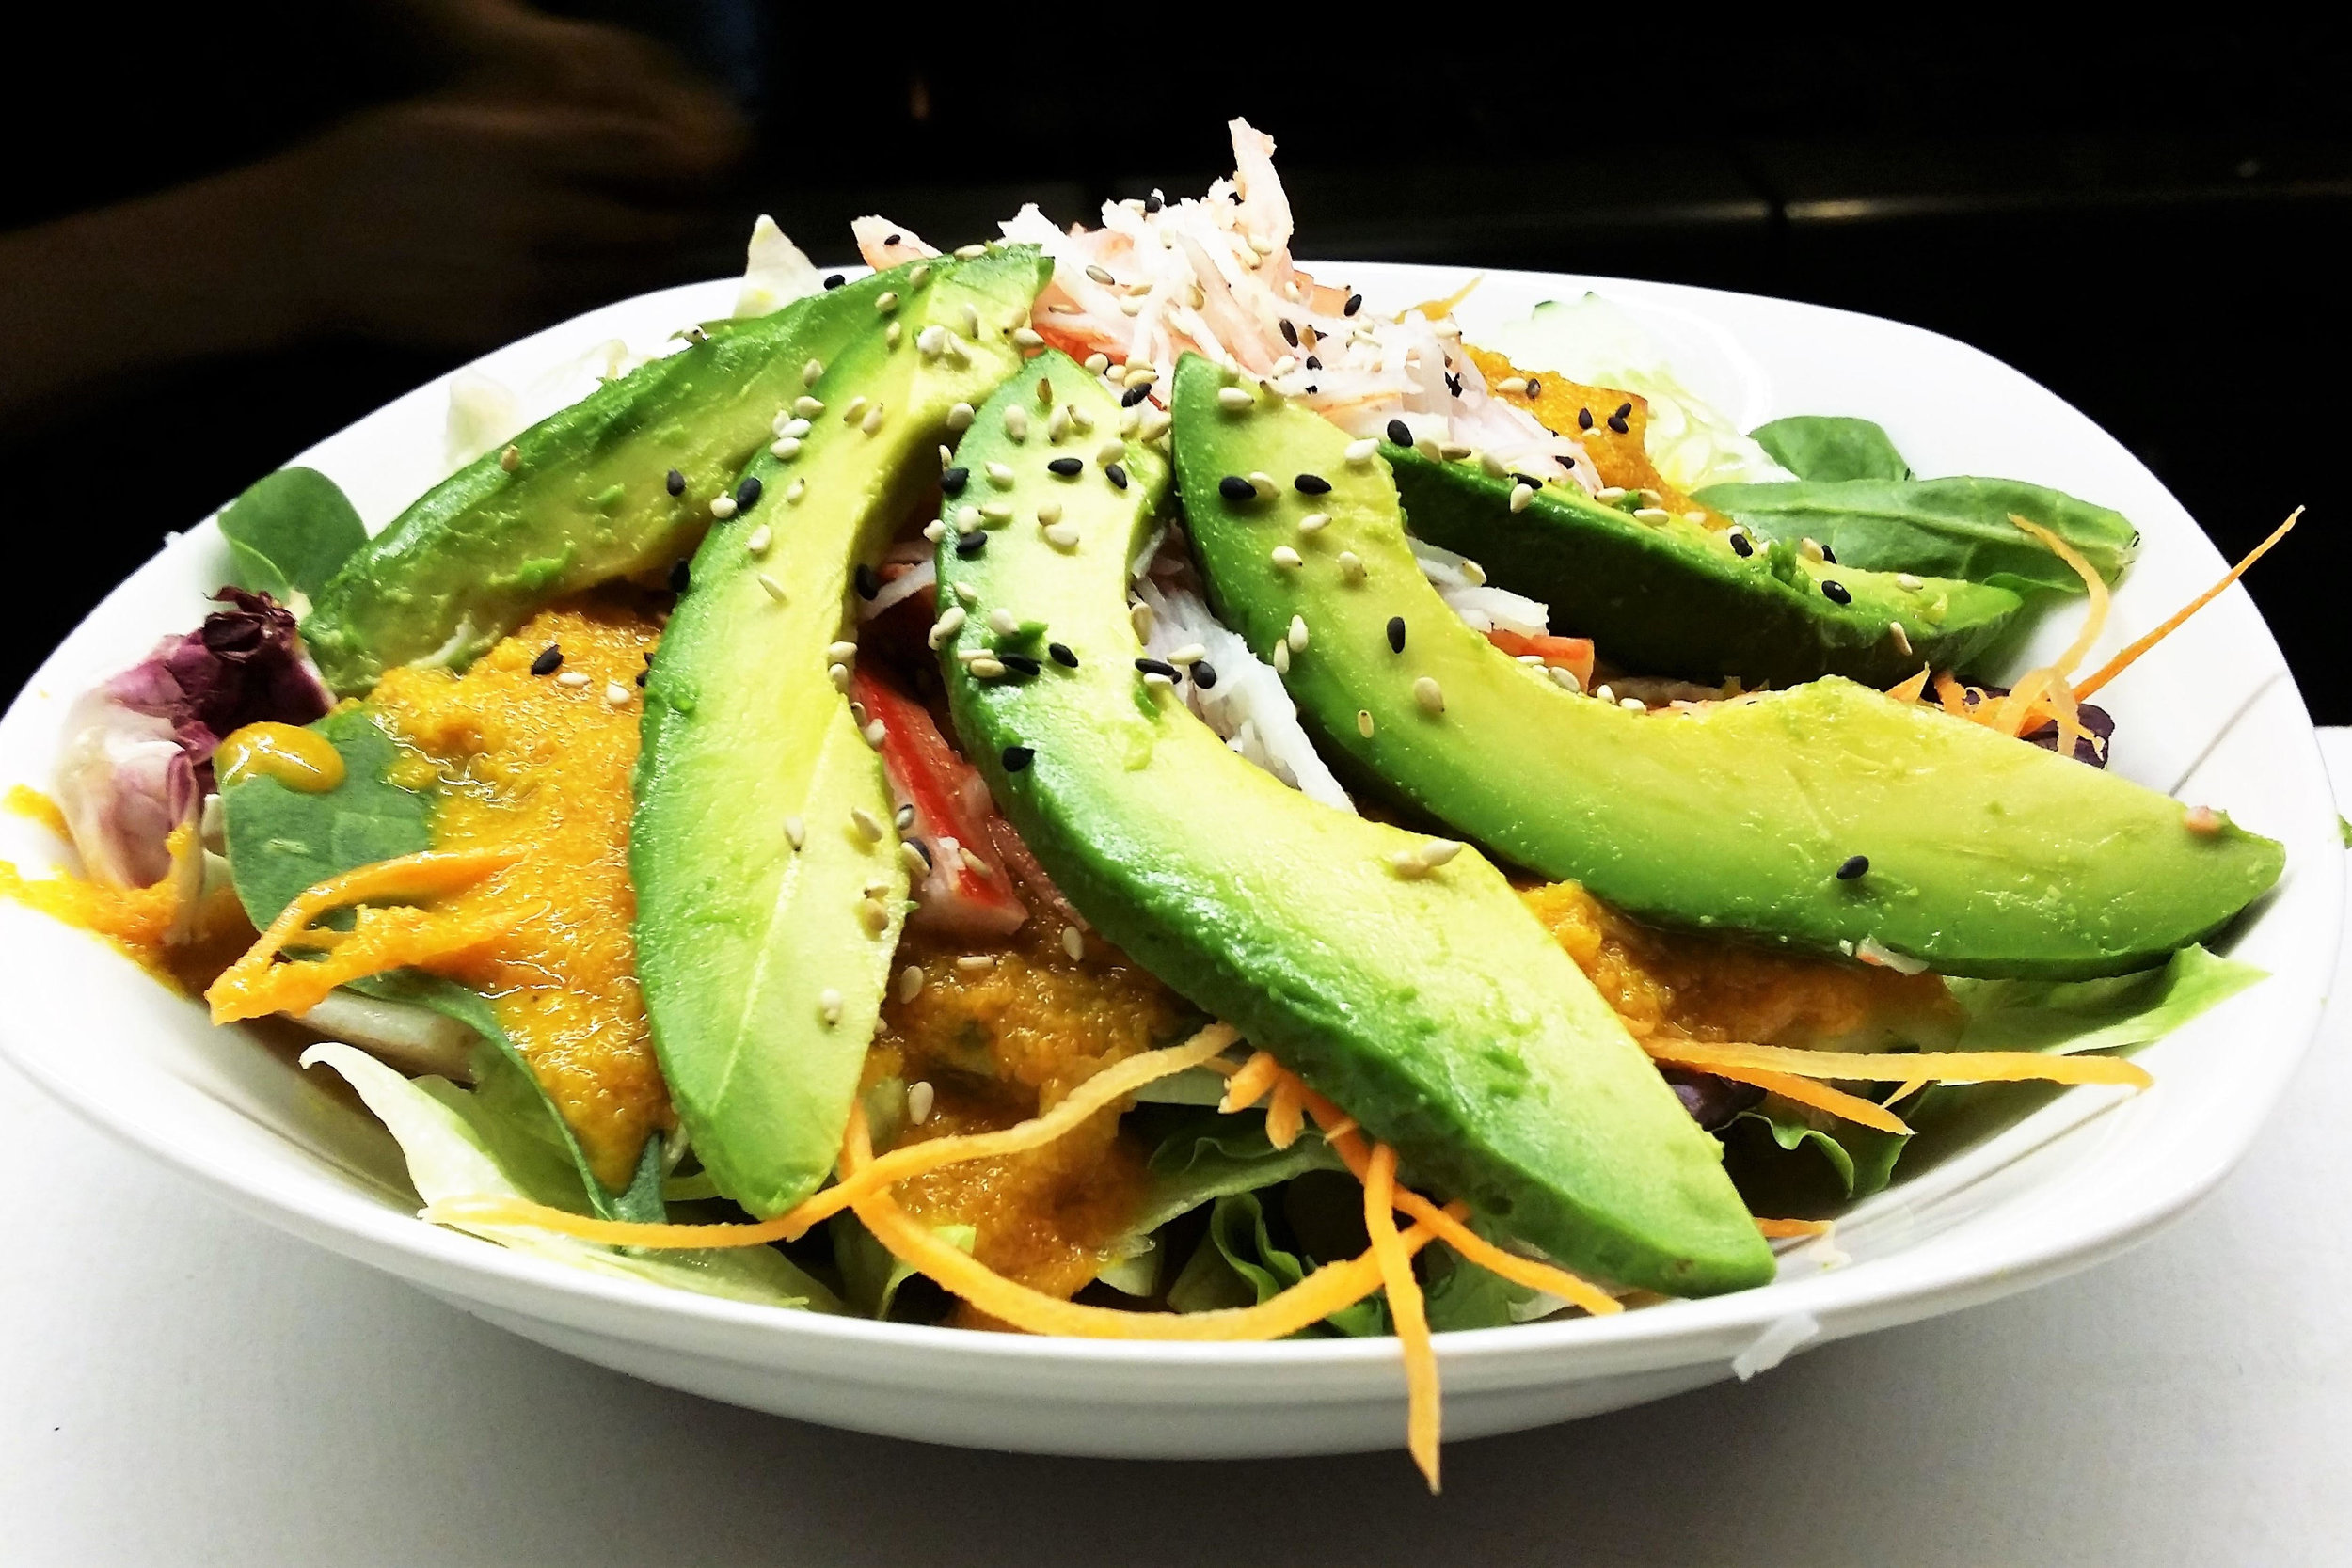 Avocado Krab Salad - Green salad topped with Avocado and Krab with ginger dressing.